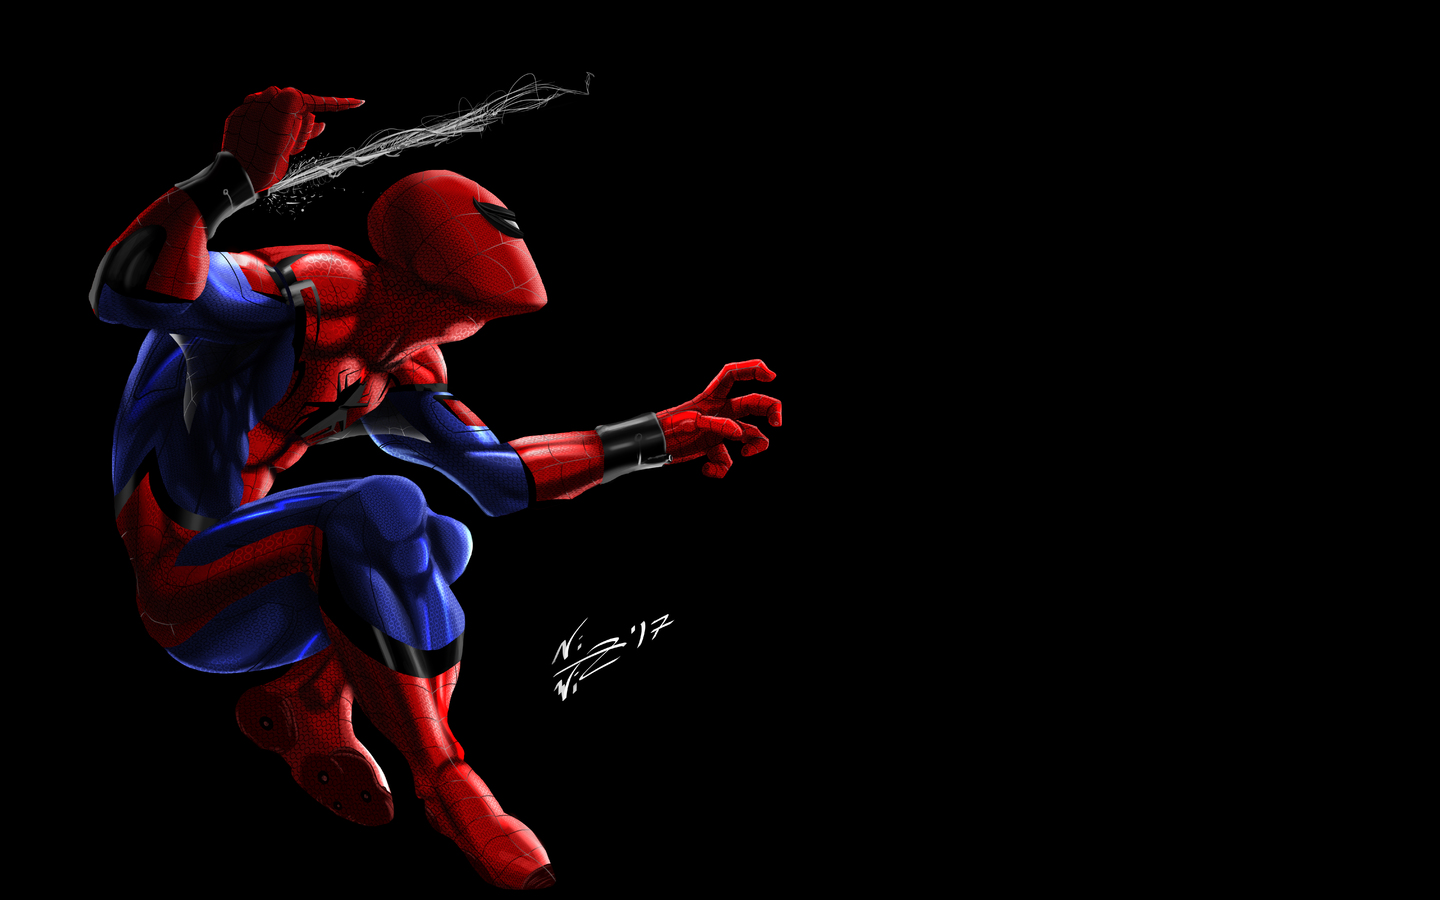 spiderman-8k-art-5h.jpg